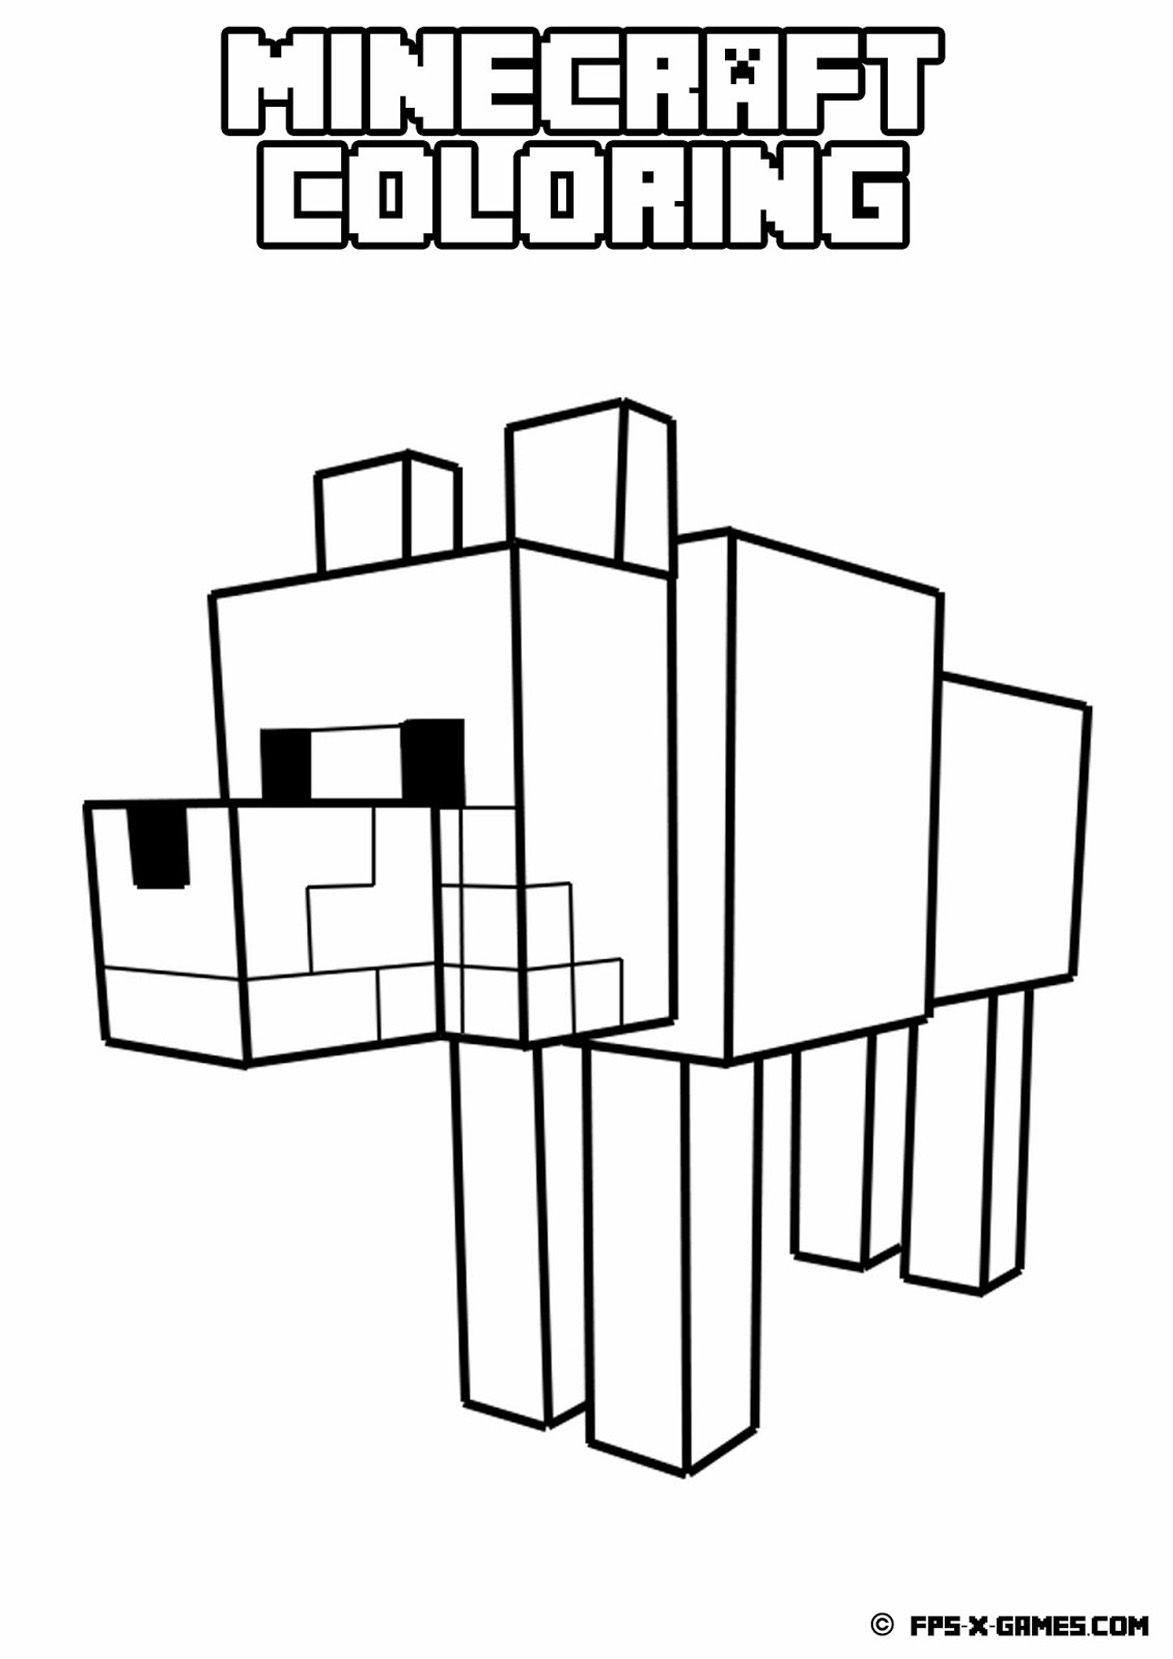 Ausmalbilder Minecraft Skins : Big Minecraft Drawings Worksheet Coloring Pages